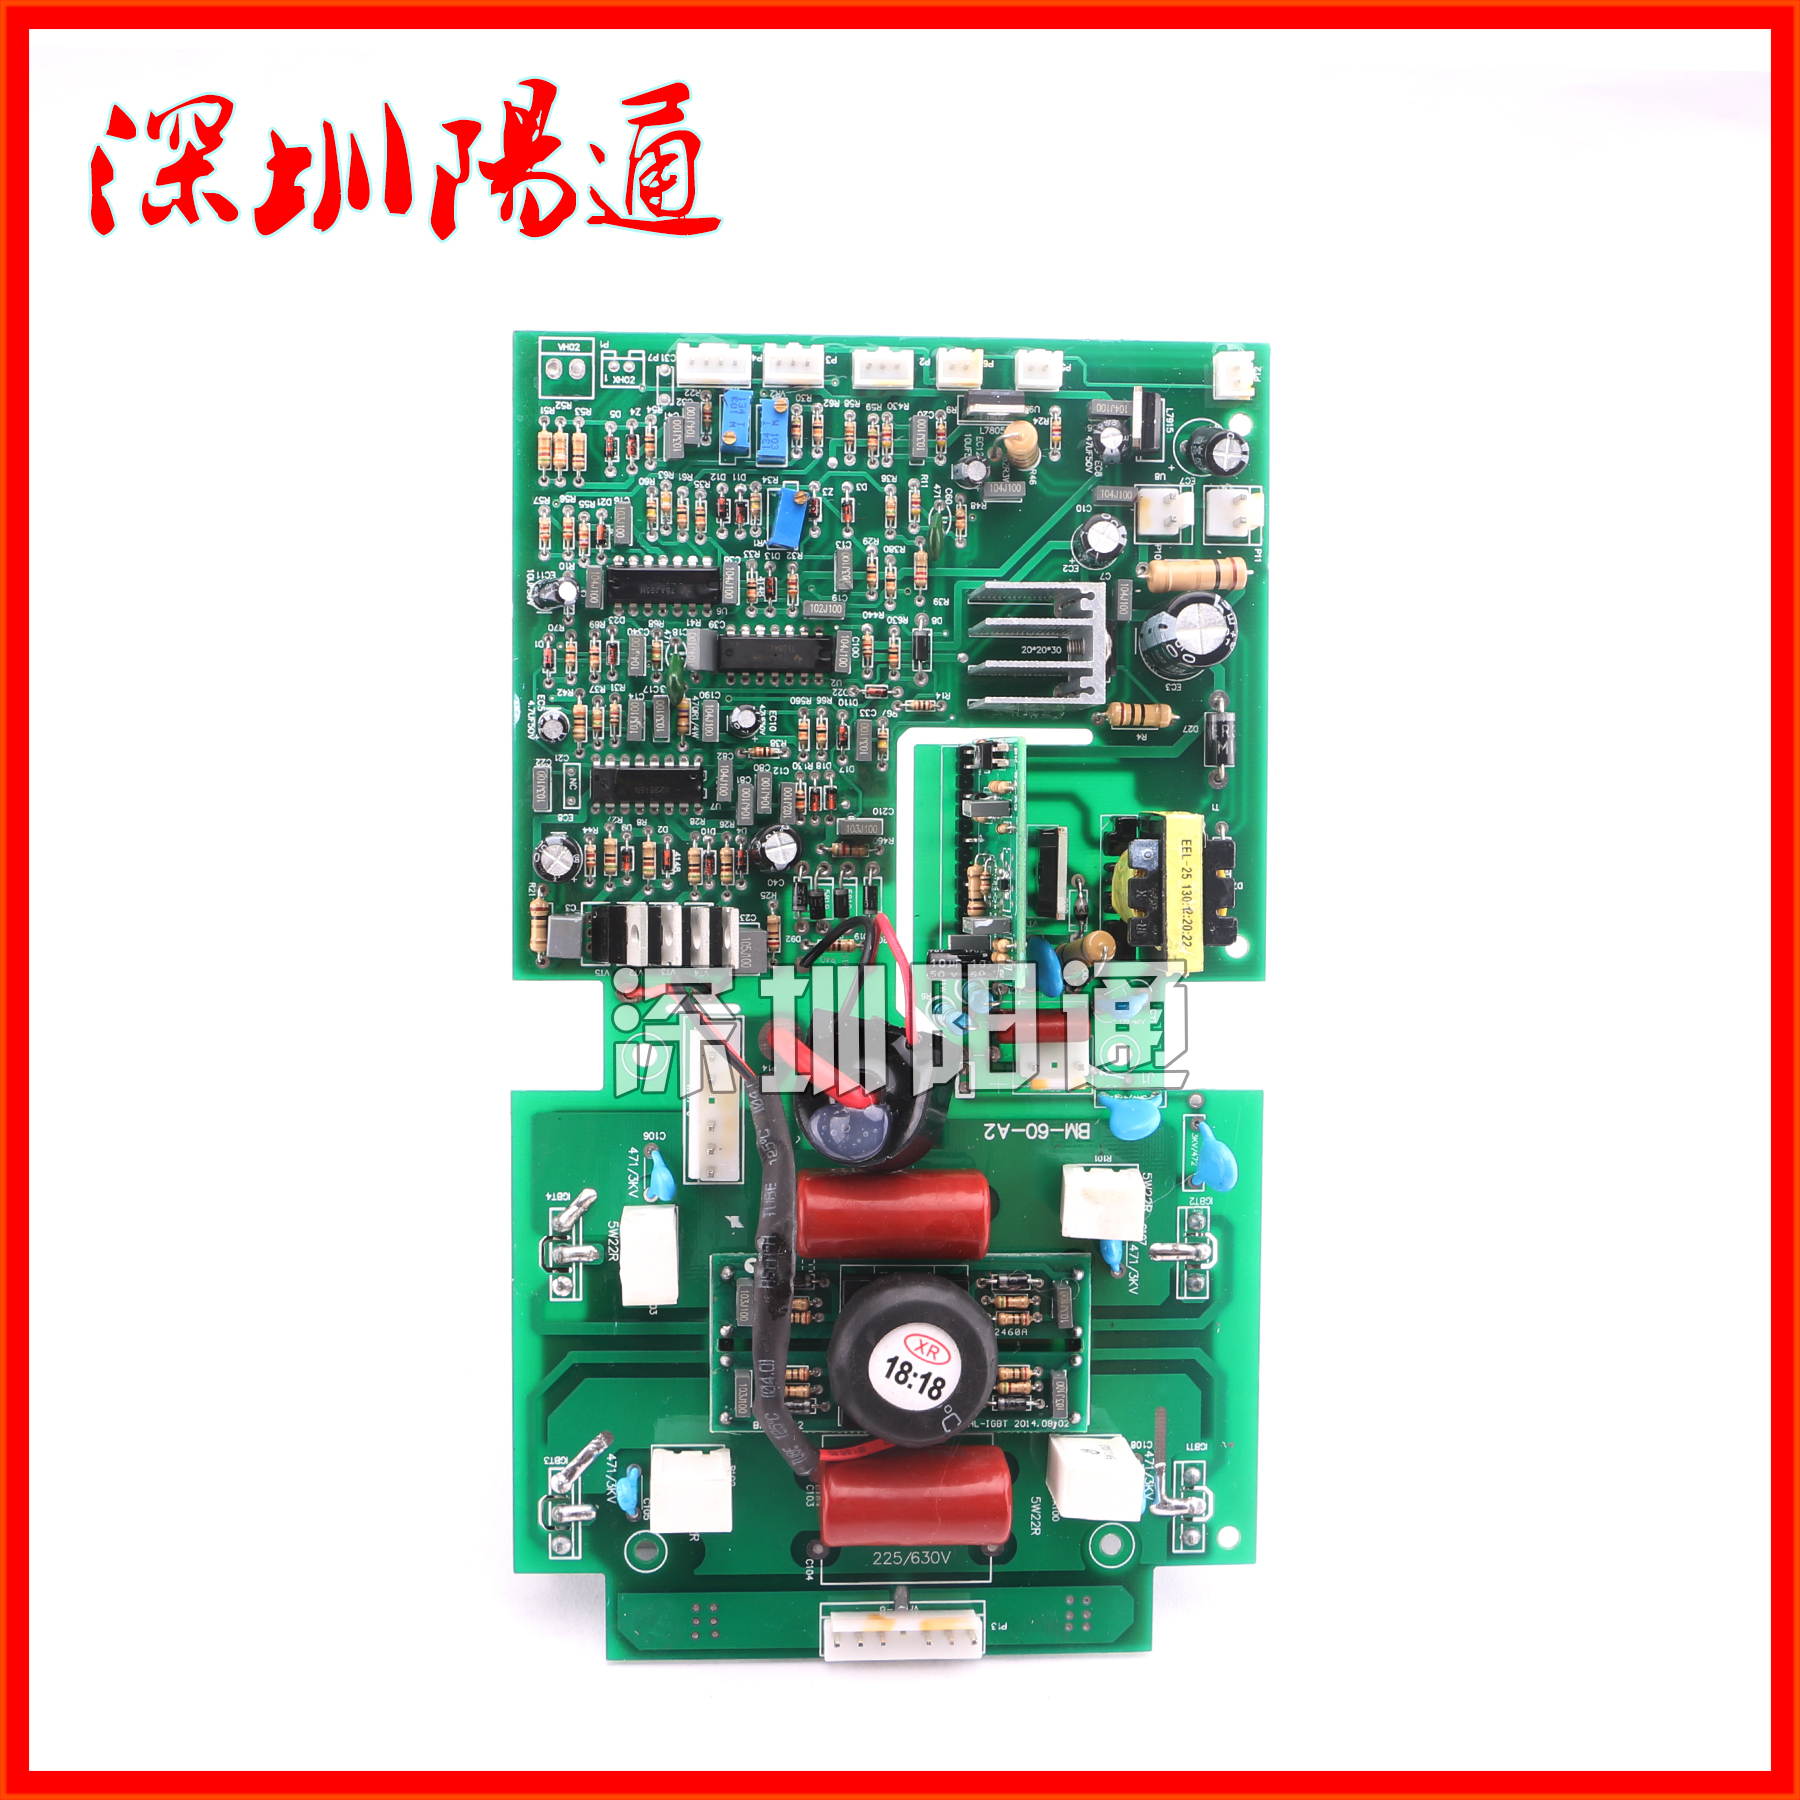 все цены на Inverter DC Welding Machine Circuit Board Accessories Dual Power Zx7-315s Universal Inverter Board Upper Circuit Board онлайн